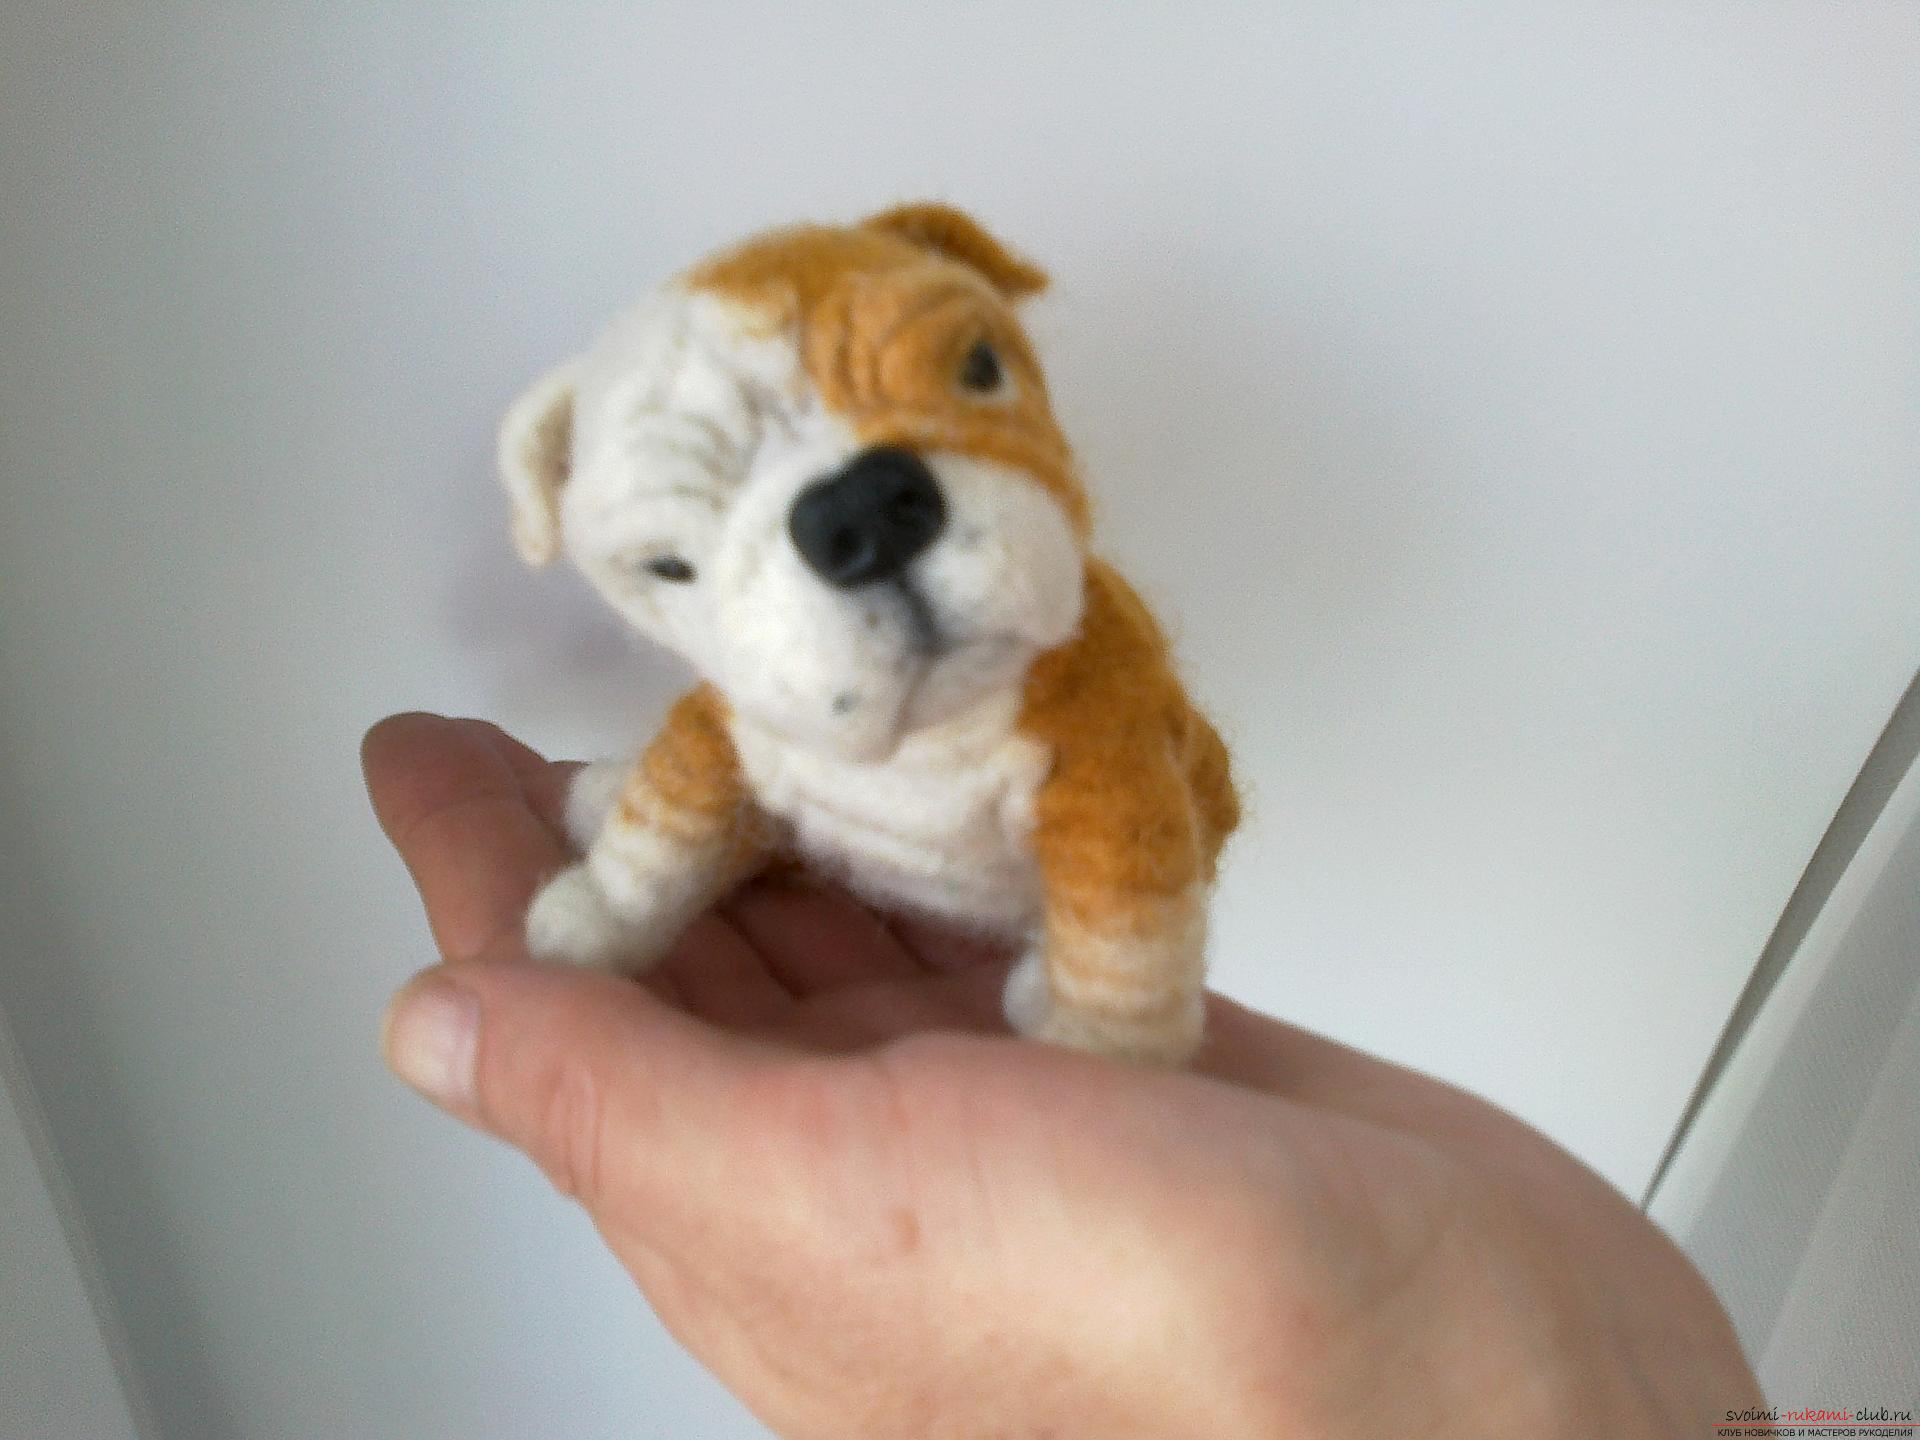 Master class on felting English Bulldog toys made of wool as a gift. Picture №10